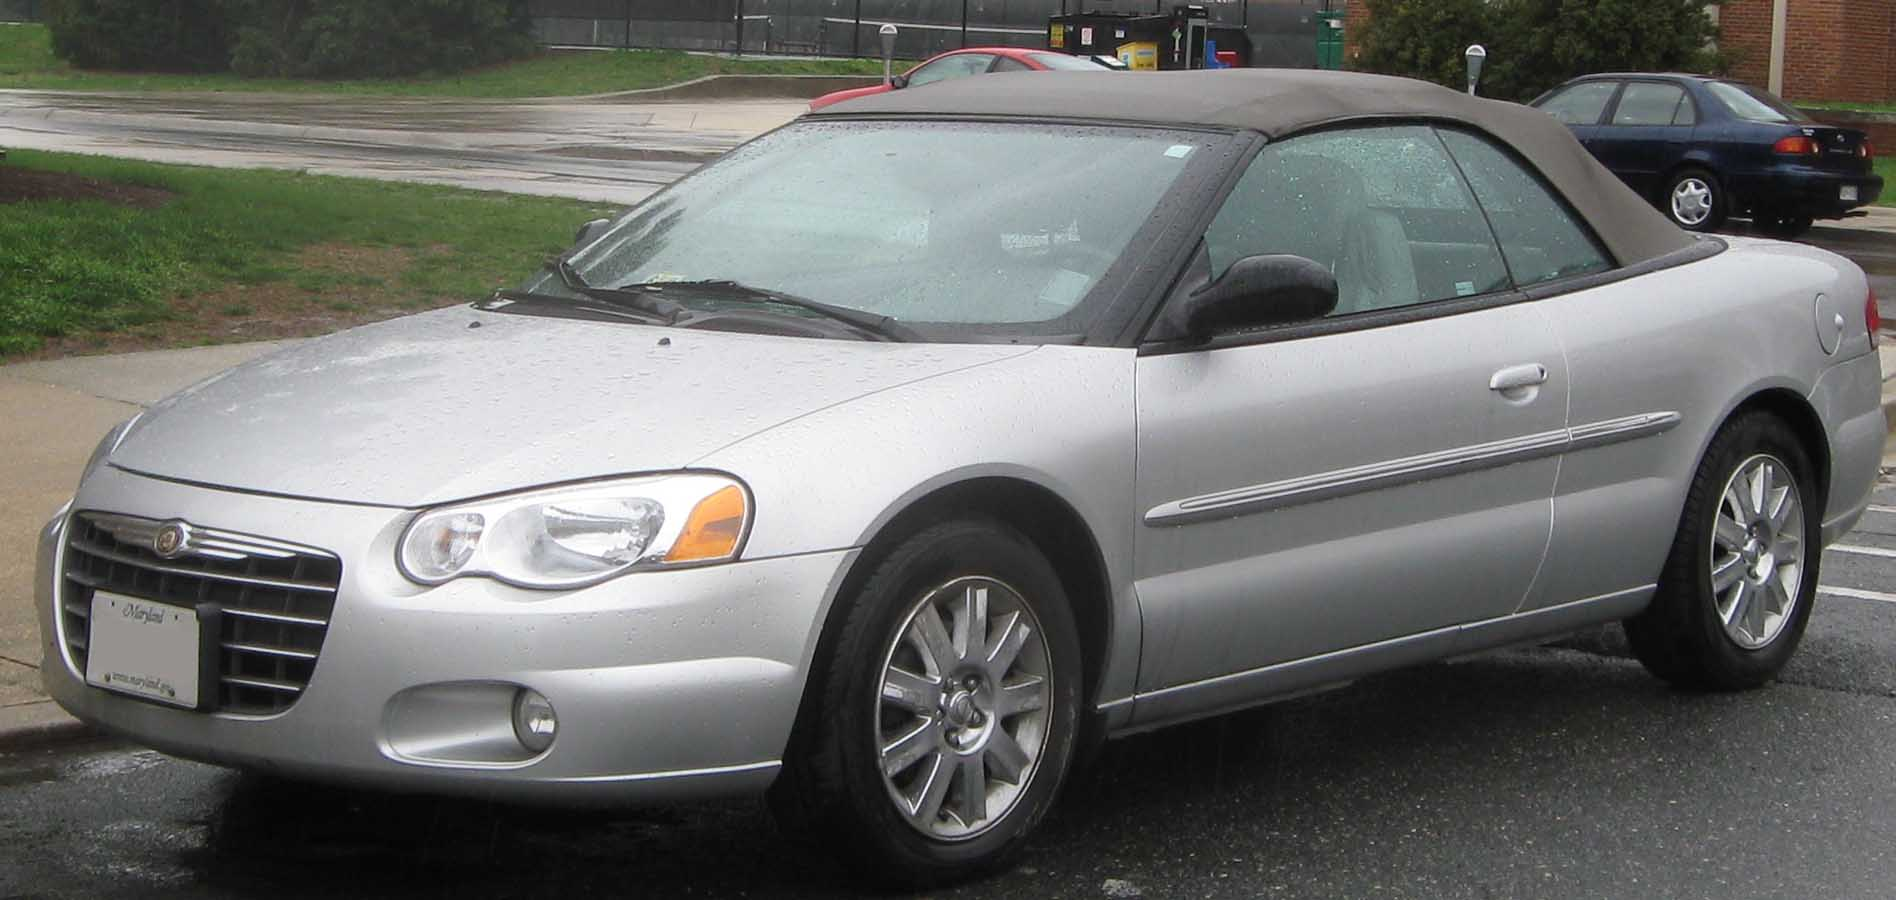 Convertible chrysler sebring 2005